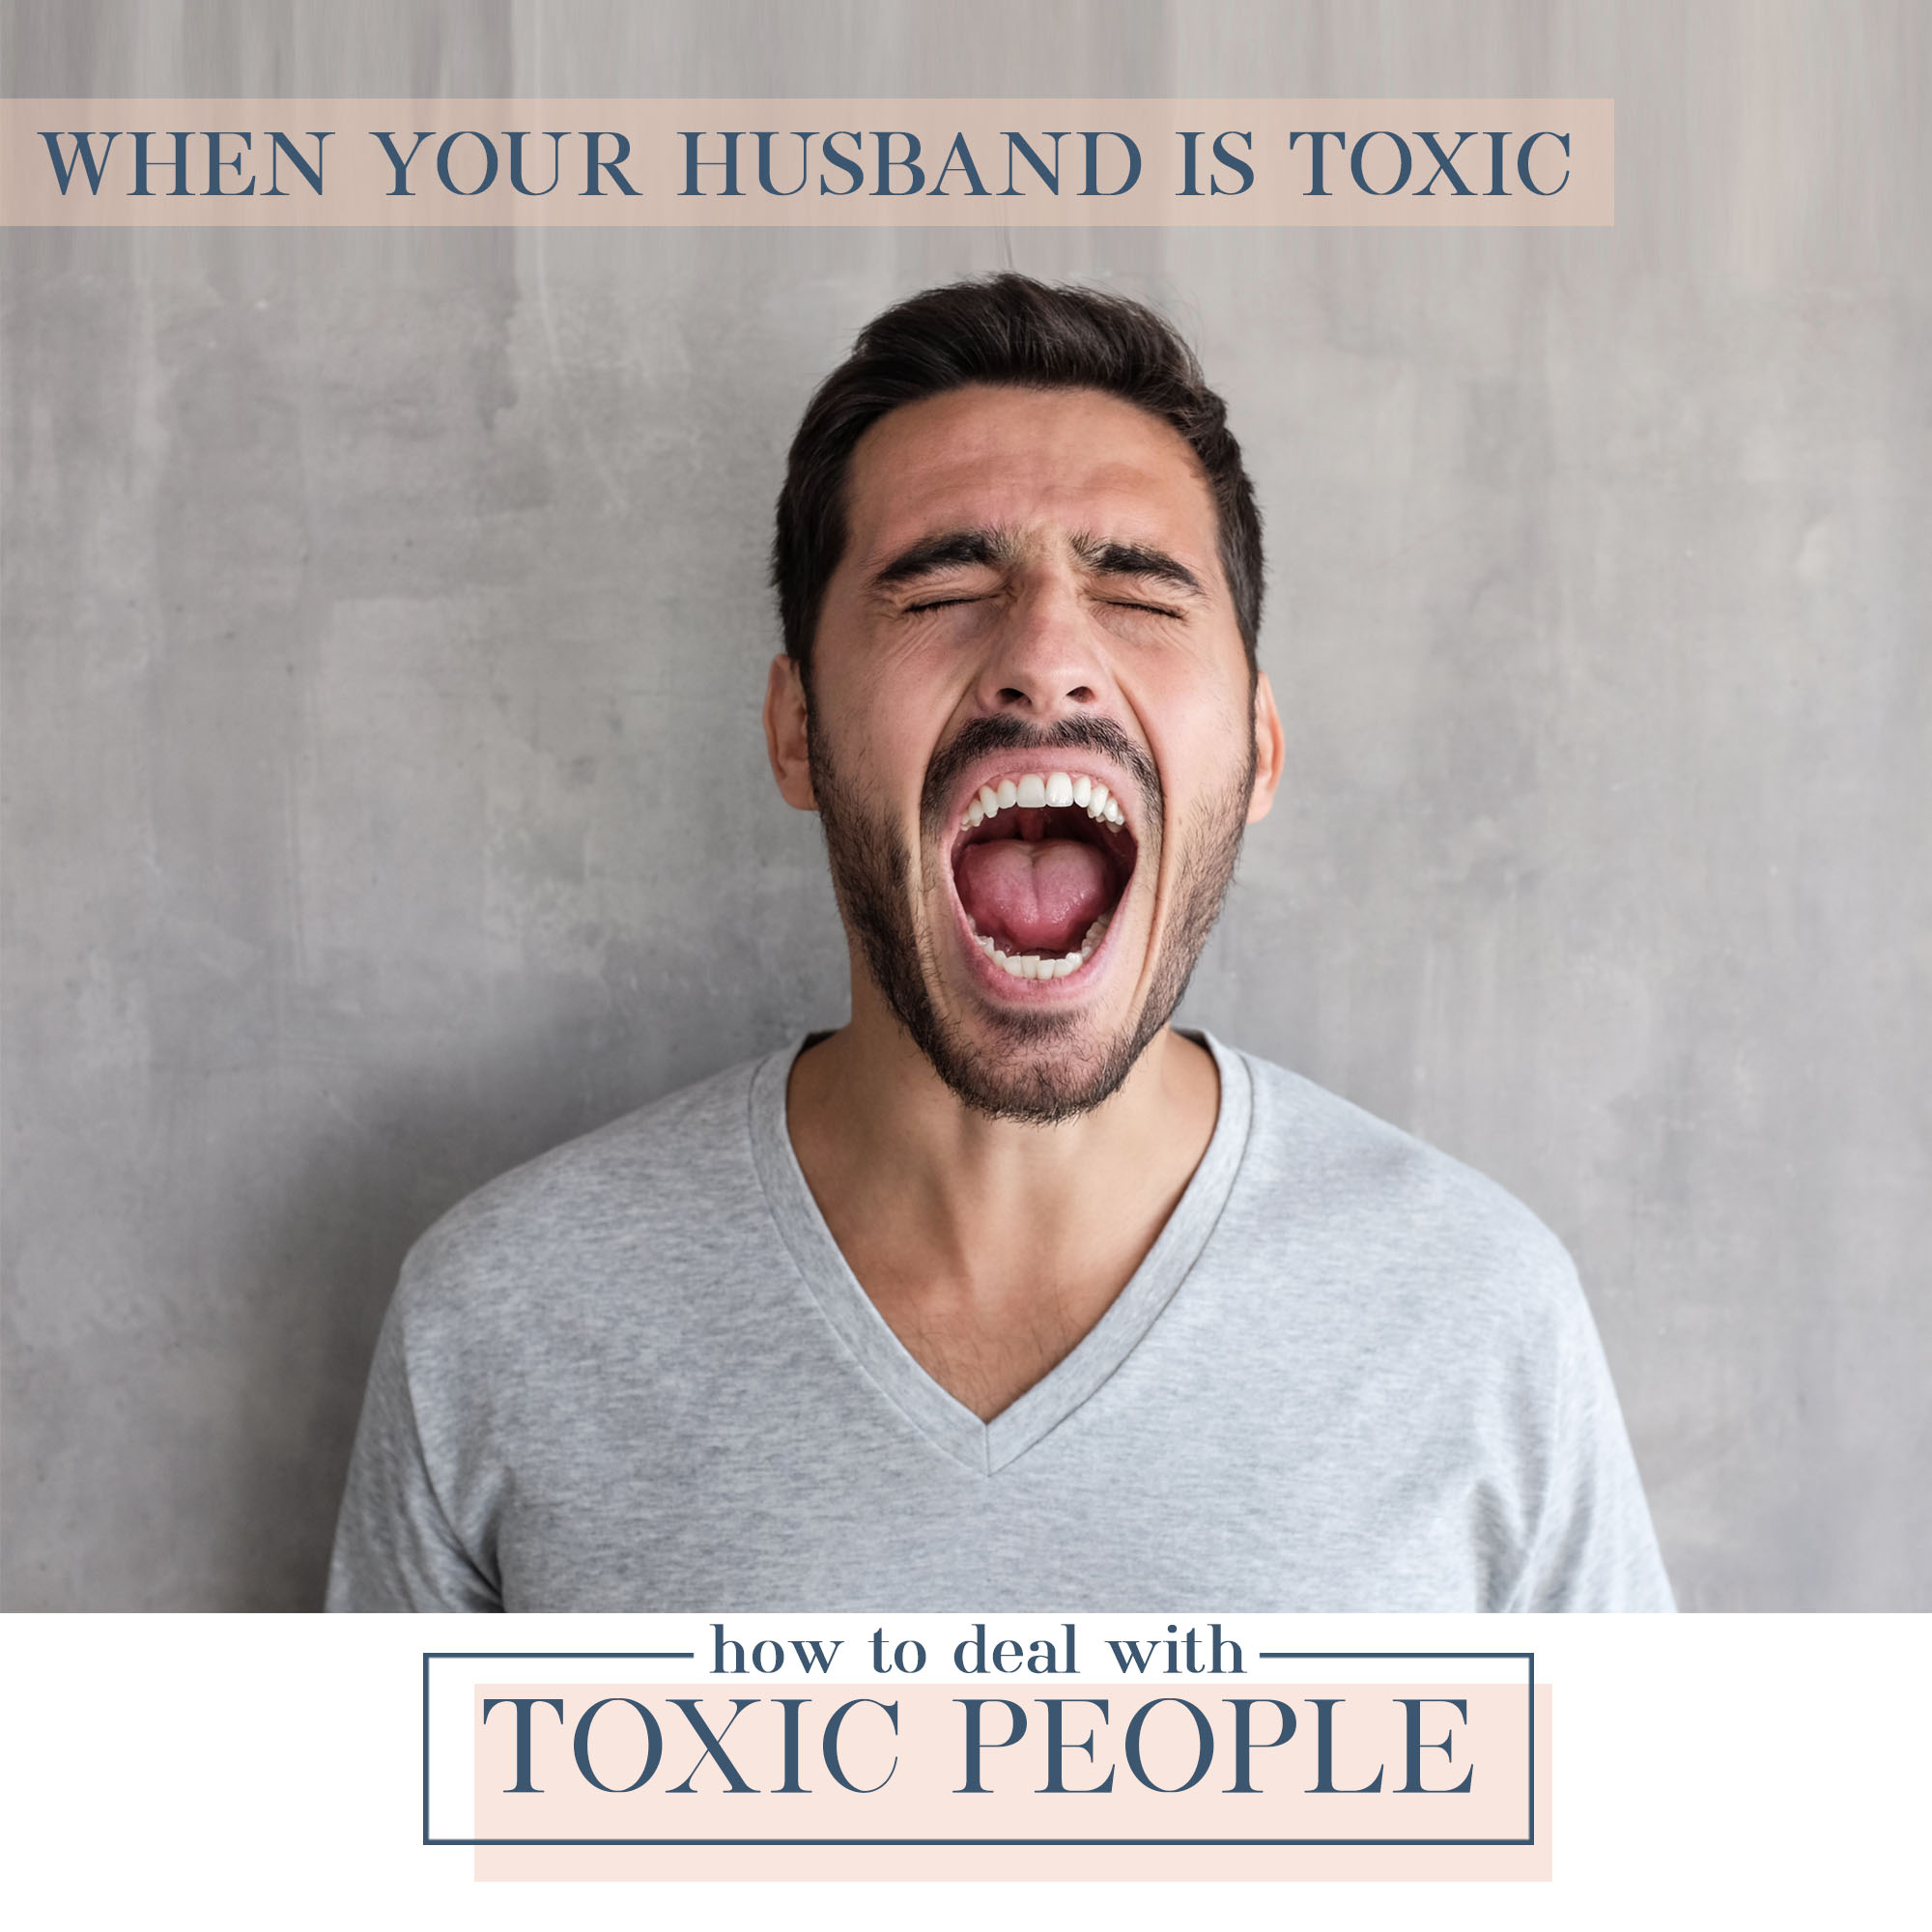 How To Deal With Toxic People